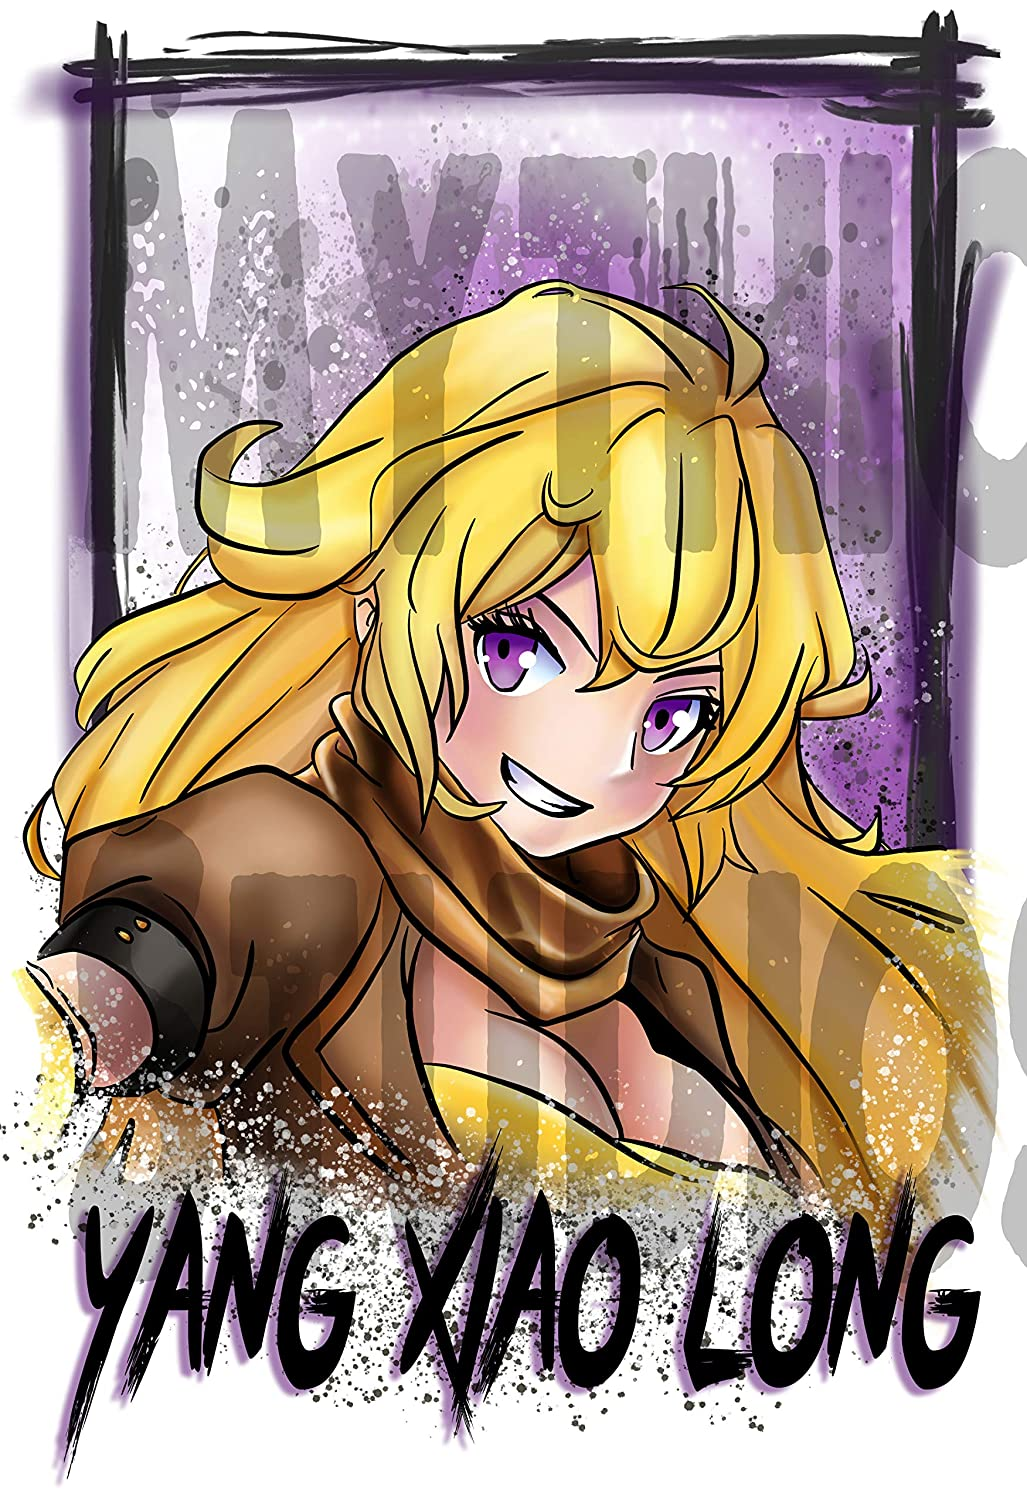 Personalized Airbrushed RWBY Yang Xiao Long License Plate Tag